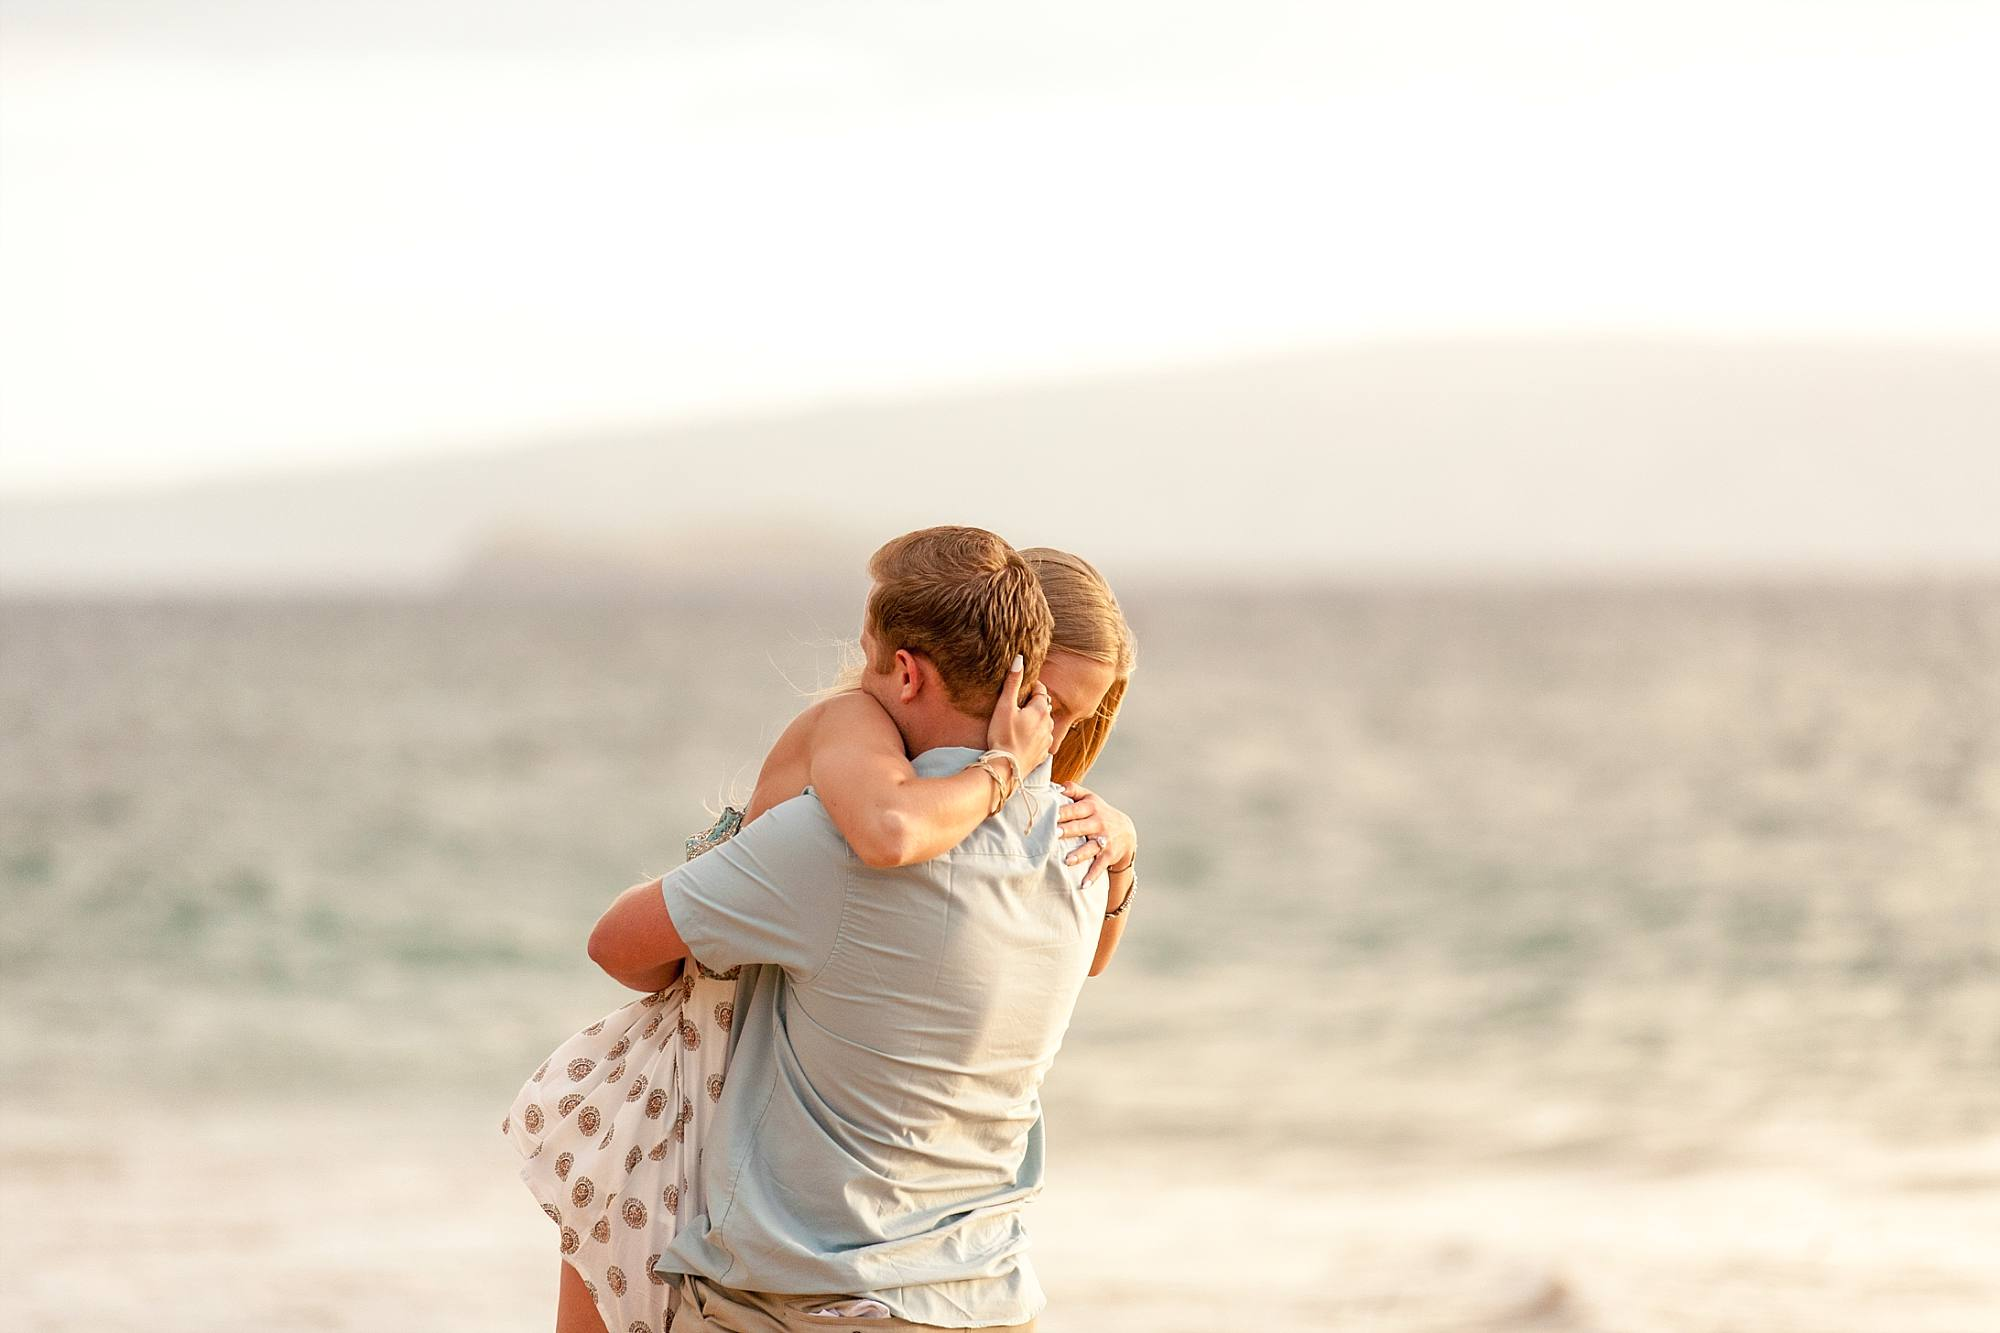 man lifting woman up and spinning her in a hug with the ocean behind them